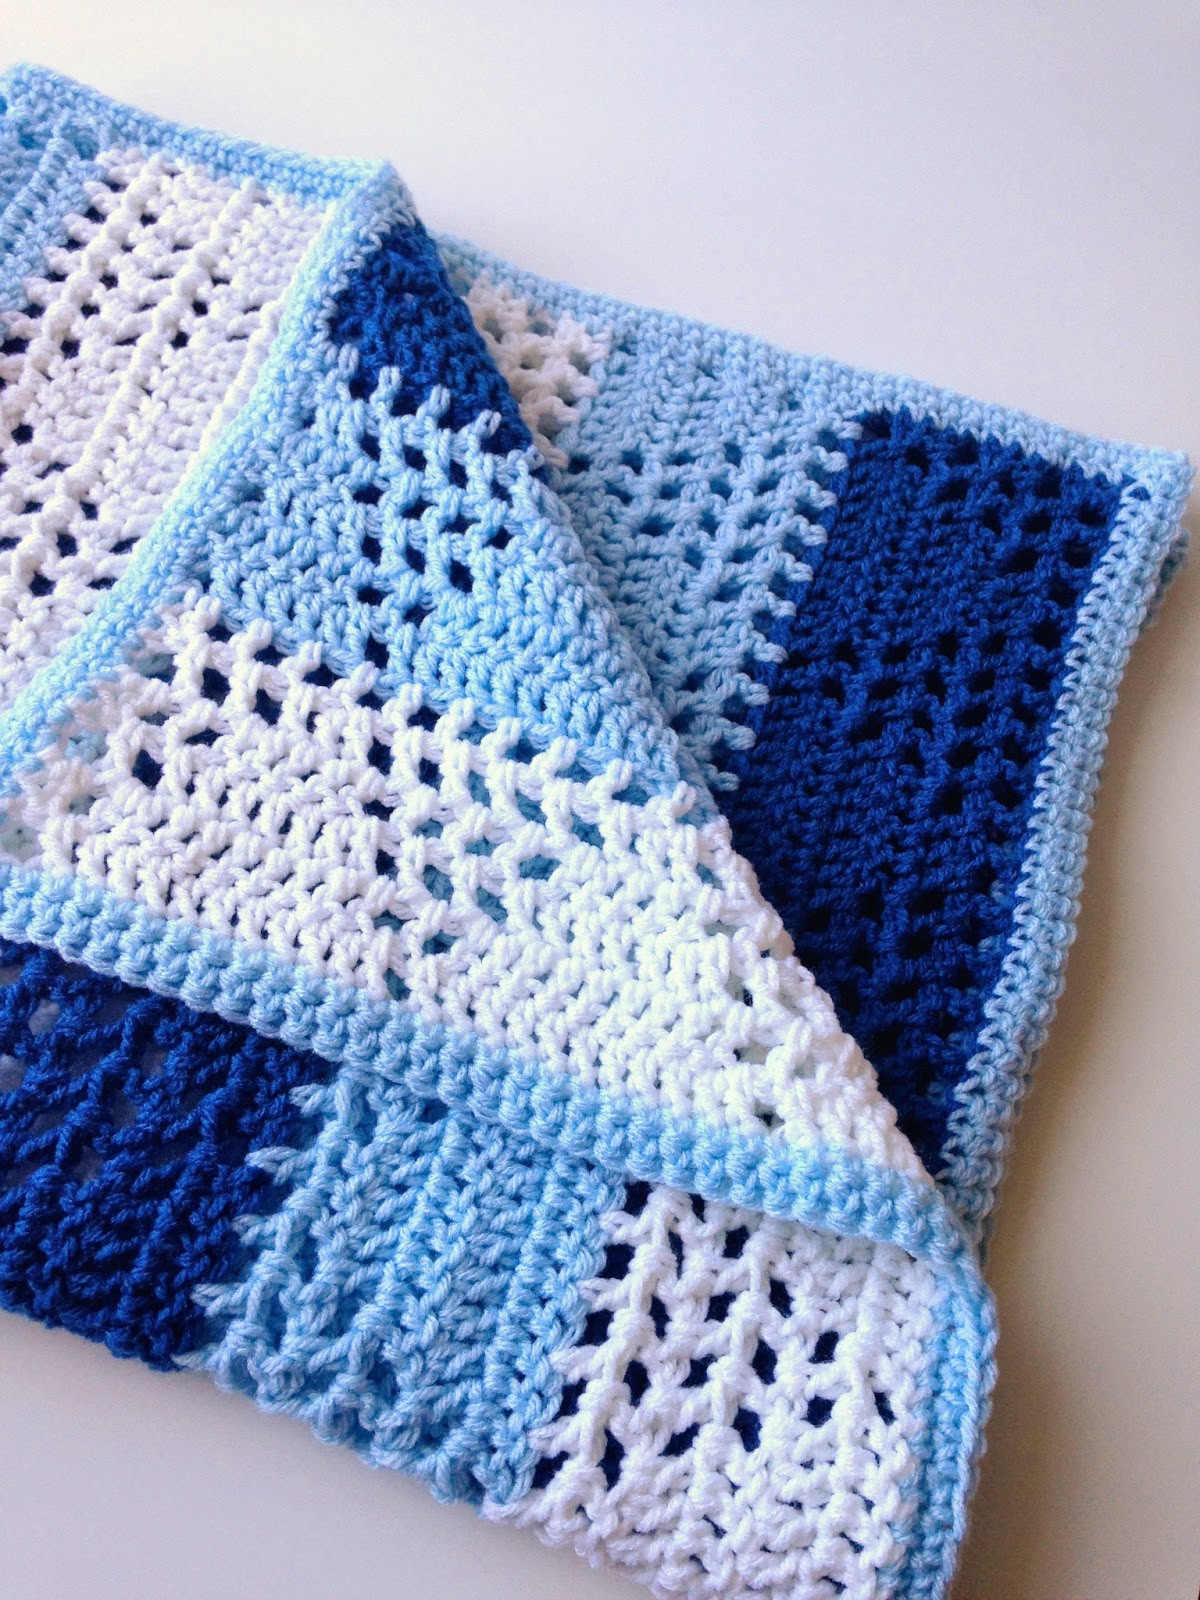 Striped Crochet Baby Blanket Beautiful 5 Little Monsters Triangles & Stripes Baby Blanket Of Amazing 50 Photos Striped Crochet Baby Blanket